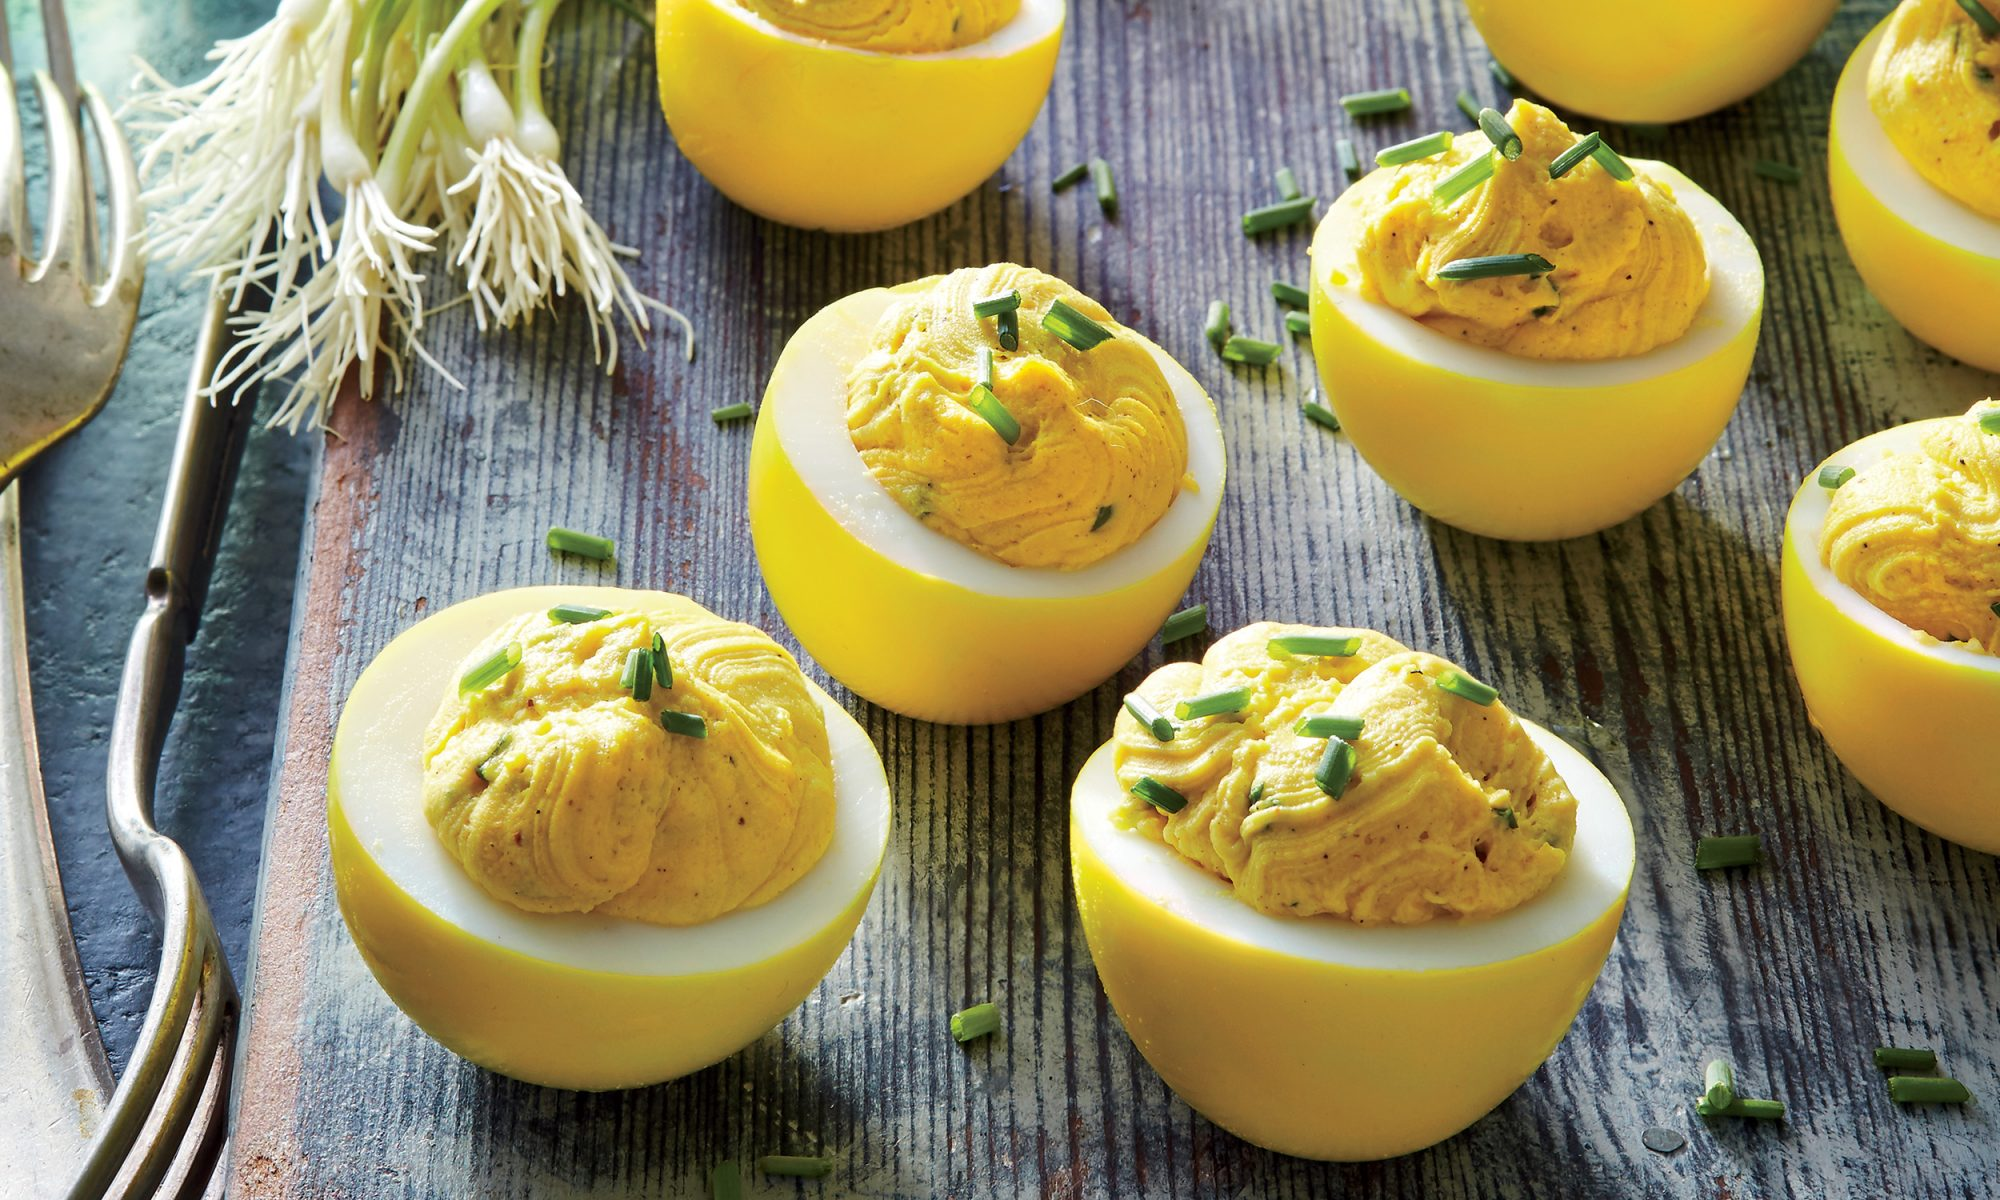 How to Make Turmeric-Pickled Deviled Eggs